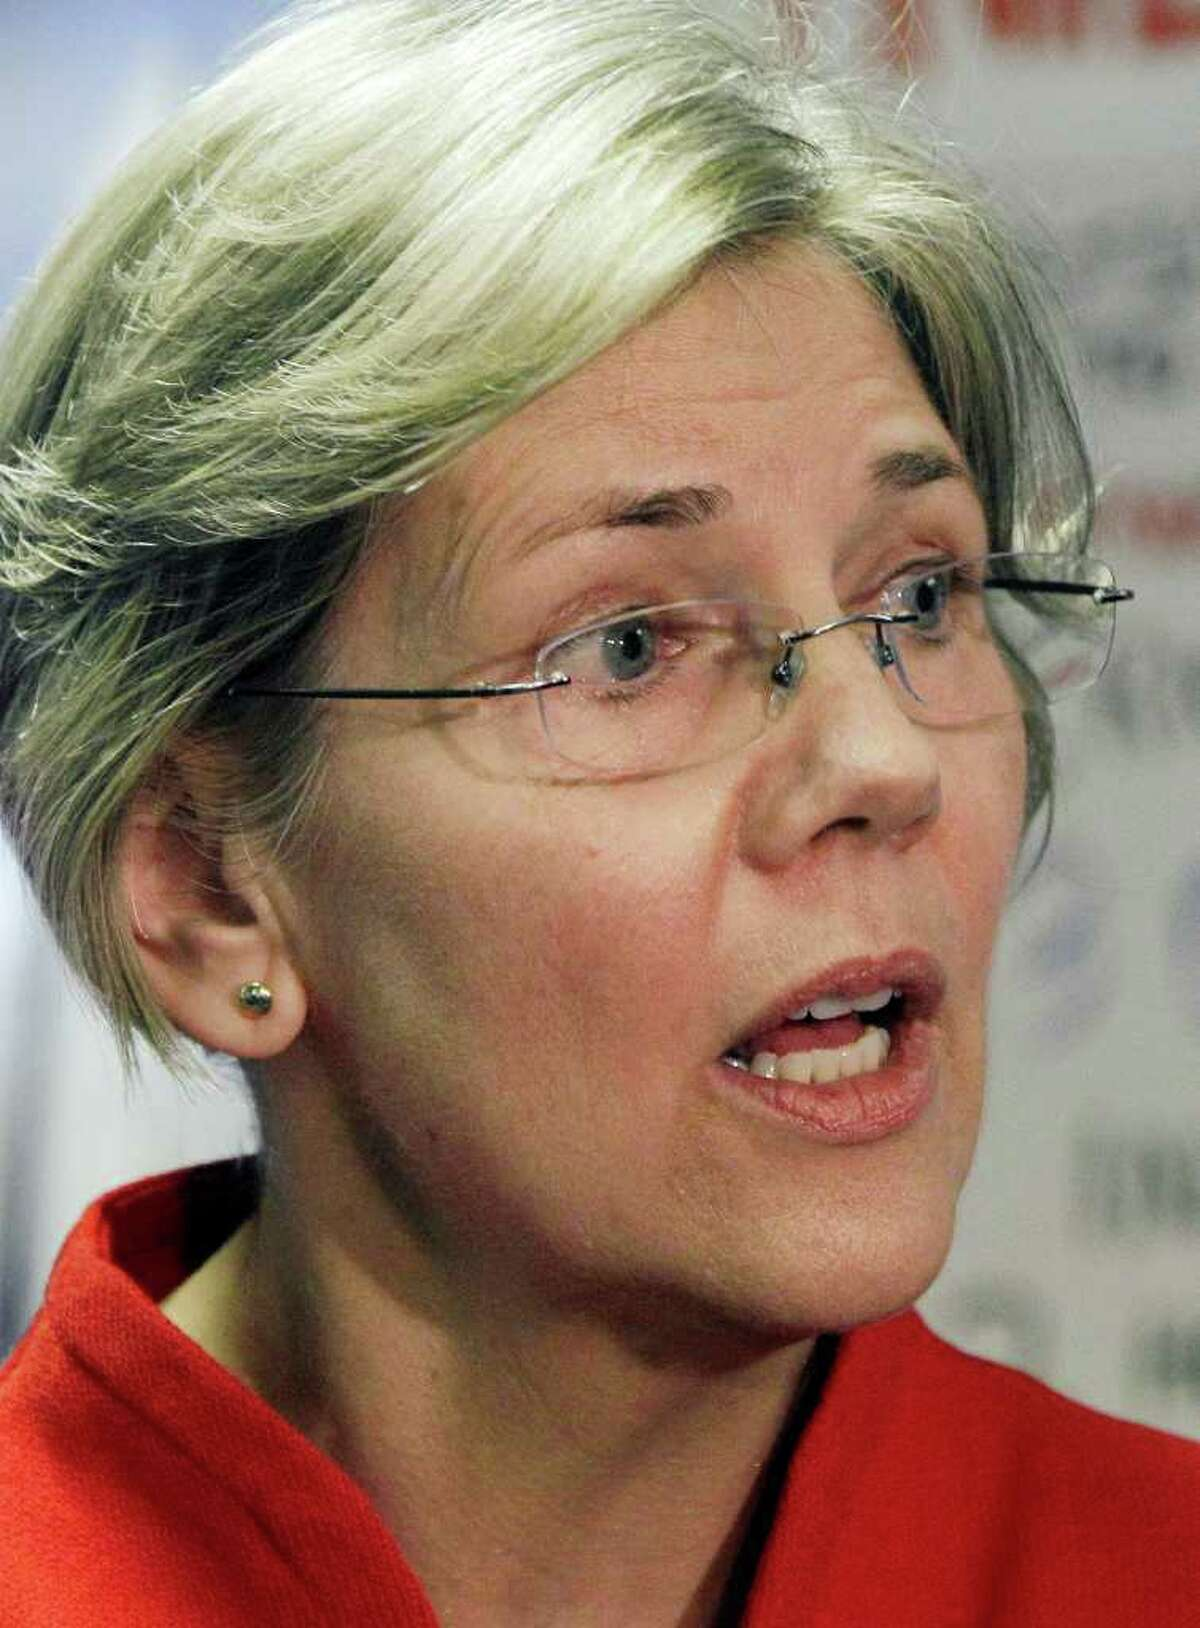 FILE - In this Feb. 27, 2012 file photo, Democrat Elizabeth Warren, who is seeking the U.S. Senate seat held by Republican Scott Brown, speaks during a news conference at her campaign headquarters in Somerville, Mass. Warren is tapping the wallets of lawyers, academics, union members and filmmakers, while Brown is relying heavily on donations from the financial and health care sectors, as they raise funds for what could be the costliest Senate race in Massachusetts?s history. (AP Photo/Elise Amendola, File)